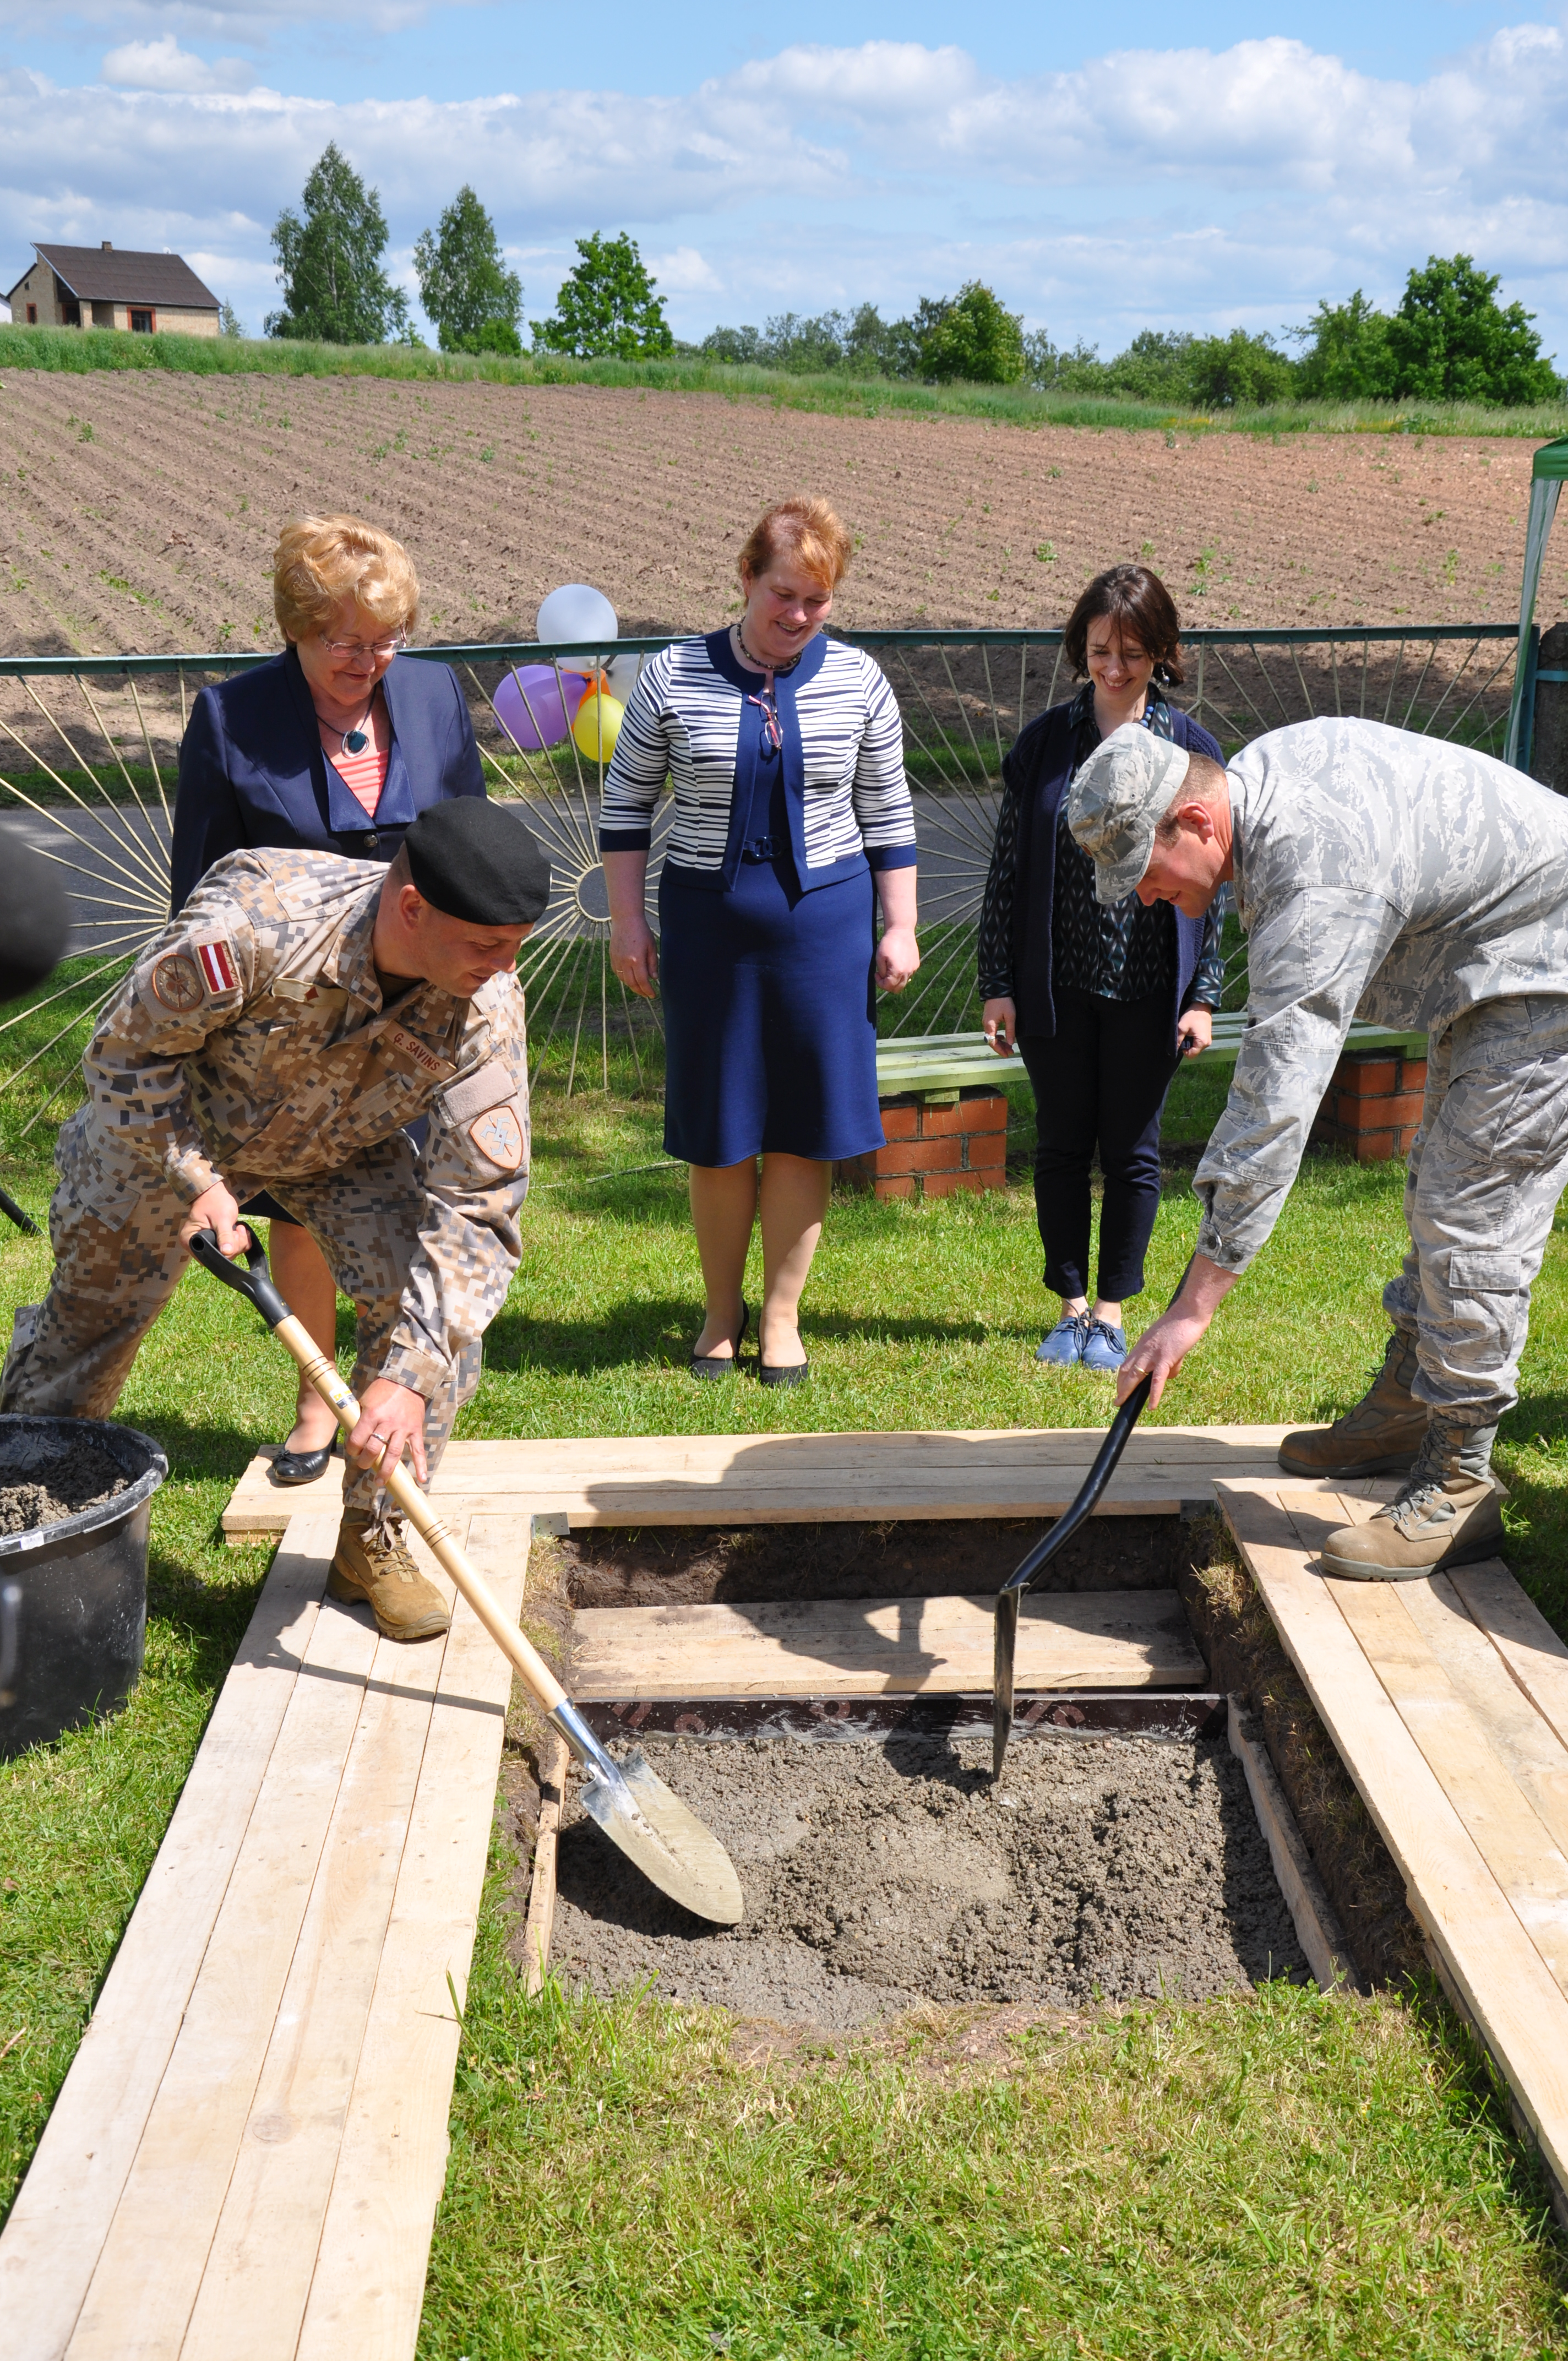 MAJ Girts Savins (Latvian National Armed Forces); Ms. Vanda Kezika (Daugavpils Regional Council), Ms. Lilita Gasjaņeca (Naujene Orphanage), Ms. Vanessa Acker (U.S. Embassy), MAJ Noah Diehl (190th CES, KS ANG) are placing a time capsule to commemorate the start of the renovation project at Naujene Orphanage. Photo by Office of Defense Cooperation Latvia.